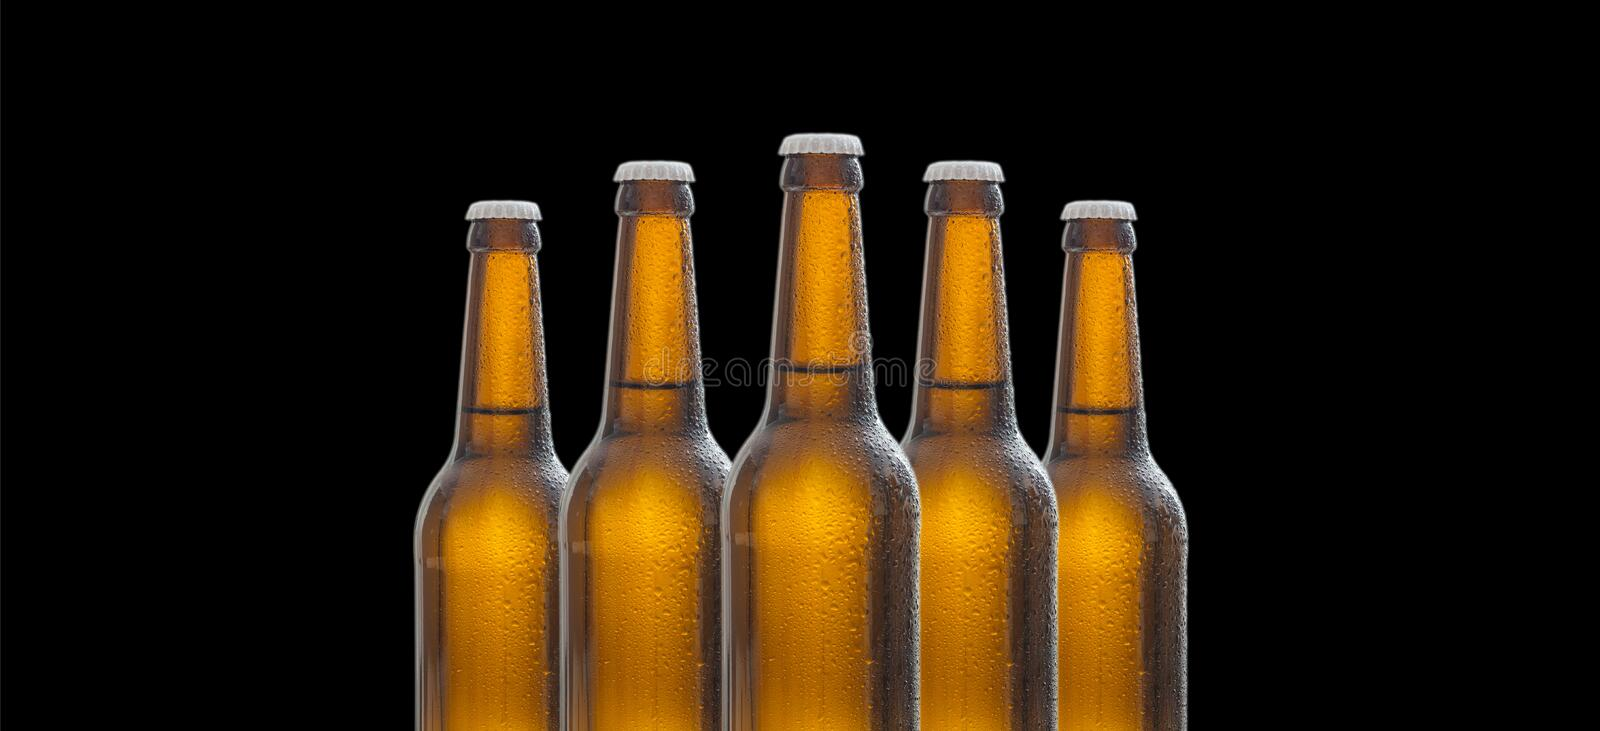 Five glass beer bottles isolated on black background stock photography